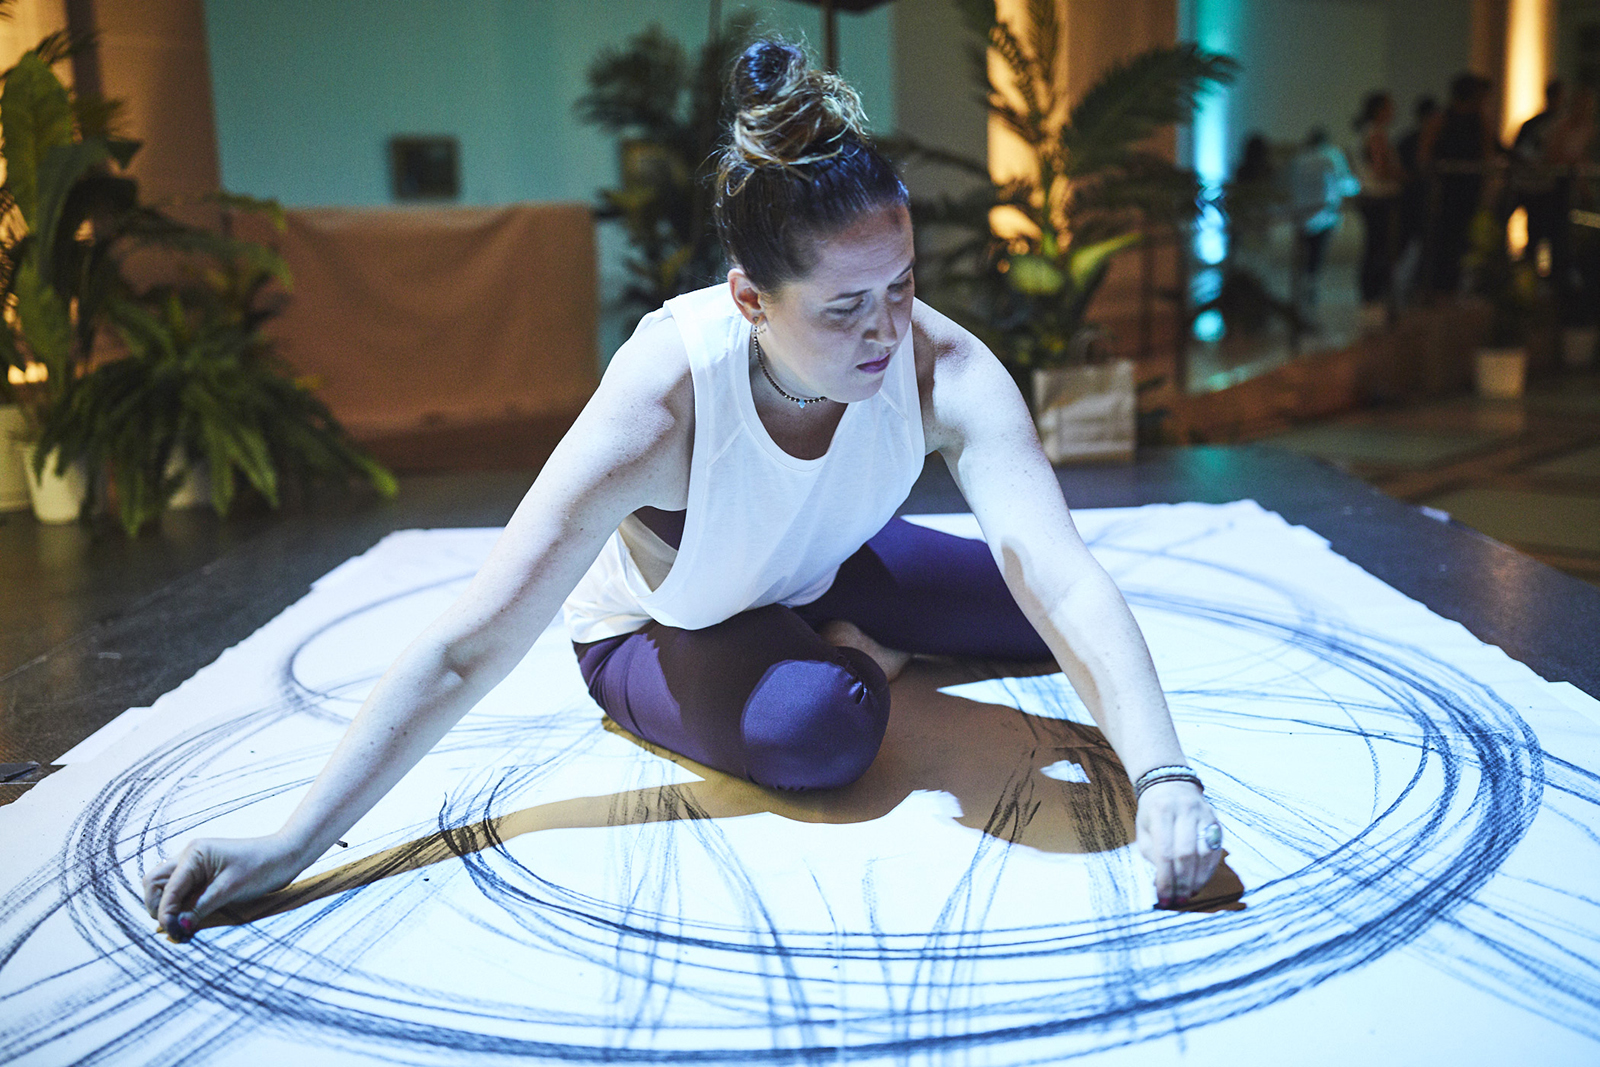 A woman practices meditative gestural drawing while sitting atop a large piece of paper, drawing large sweeping circles of charcoal around her body.